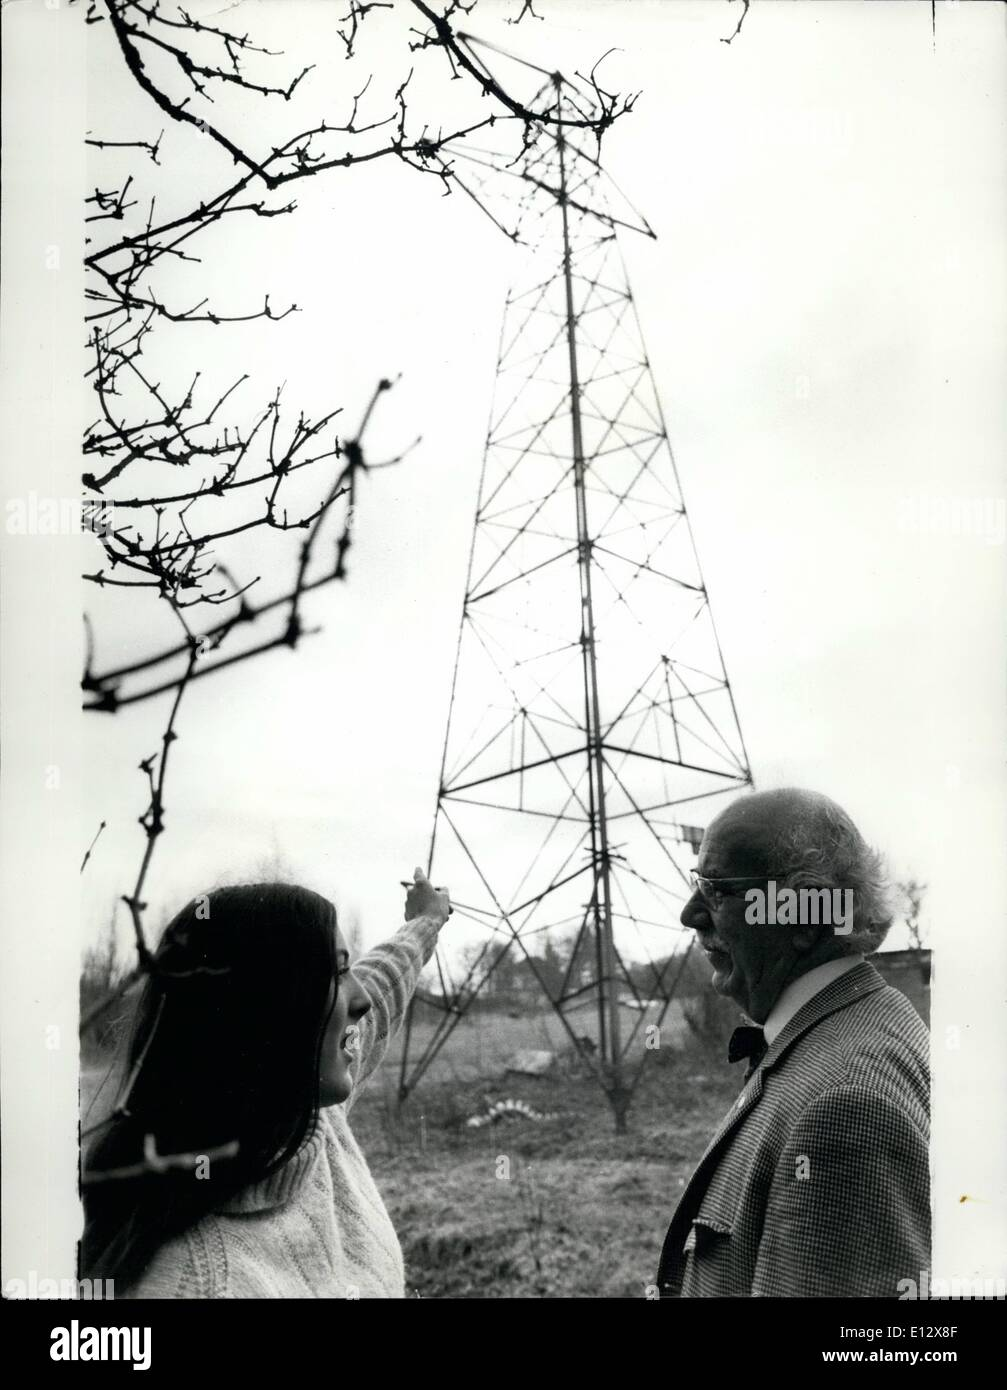 Feb. 25, 2012 - Ian Marr and his daughter Celie disuss the Pylon. - Stock Image